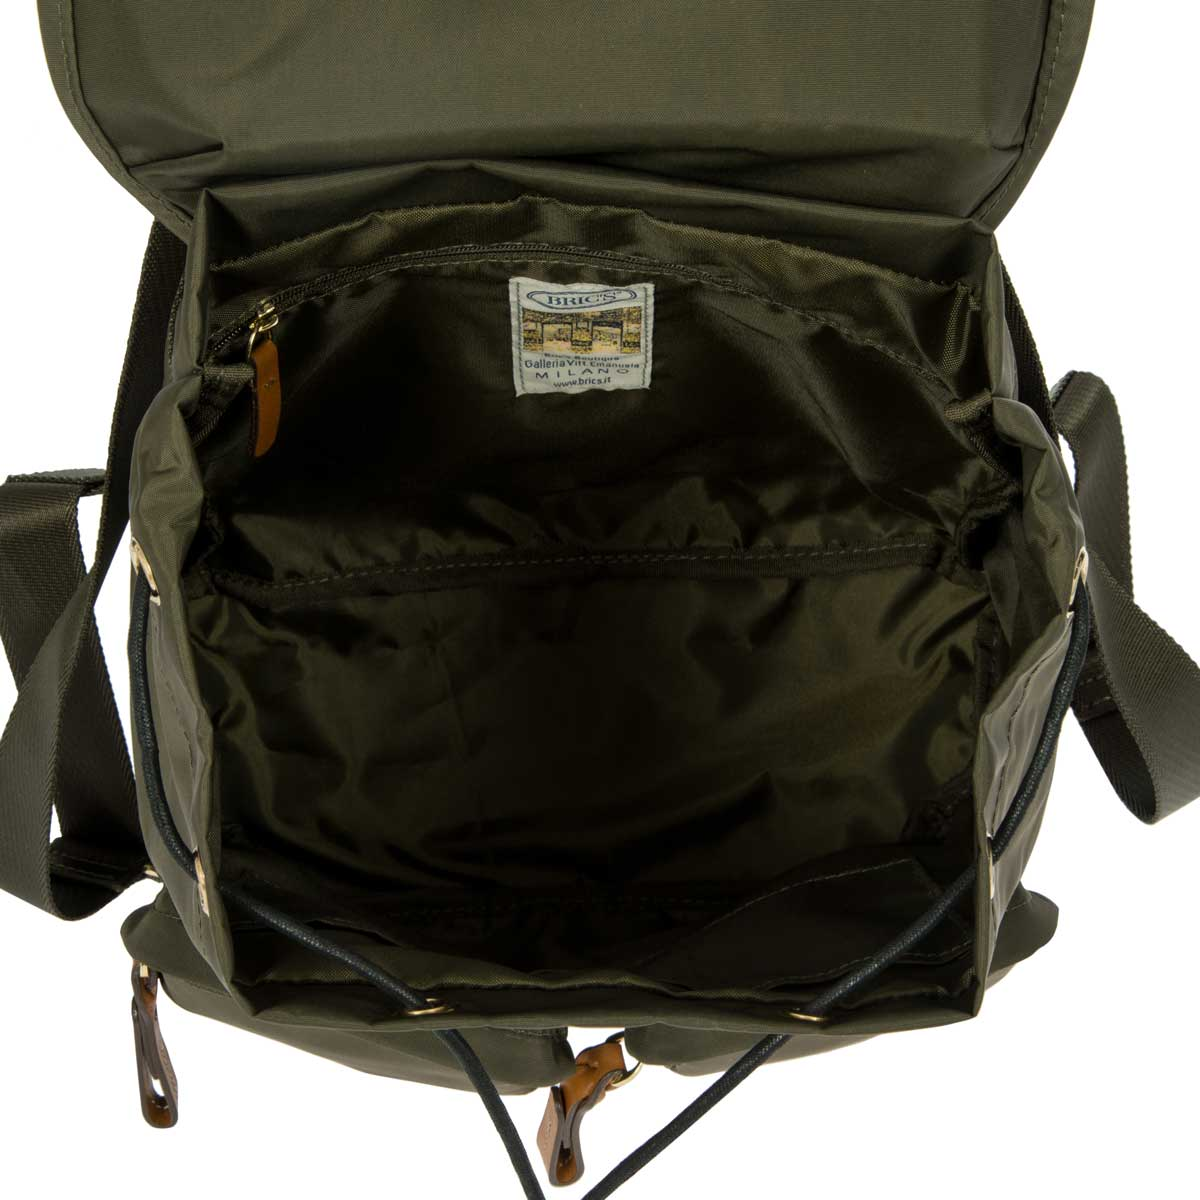 X-Bag Small City Backpack a89026e3793f1